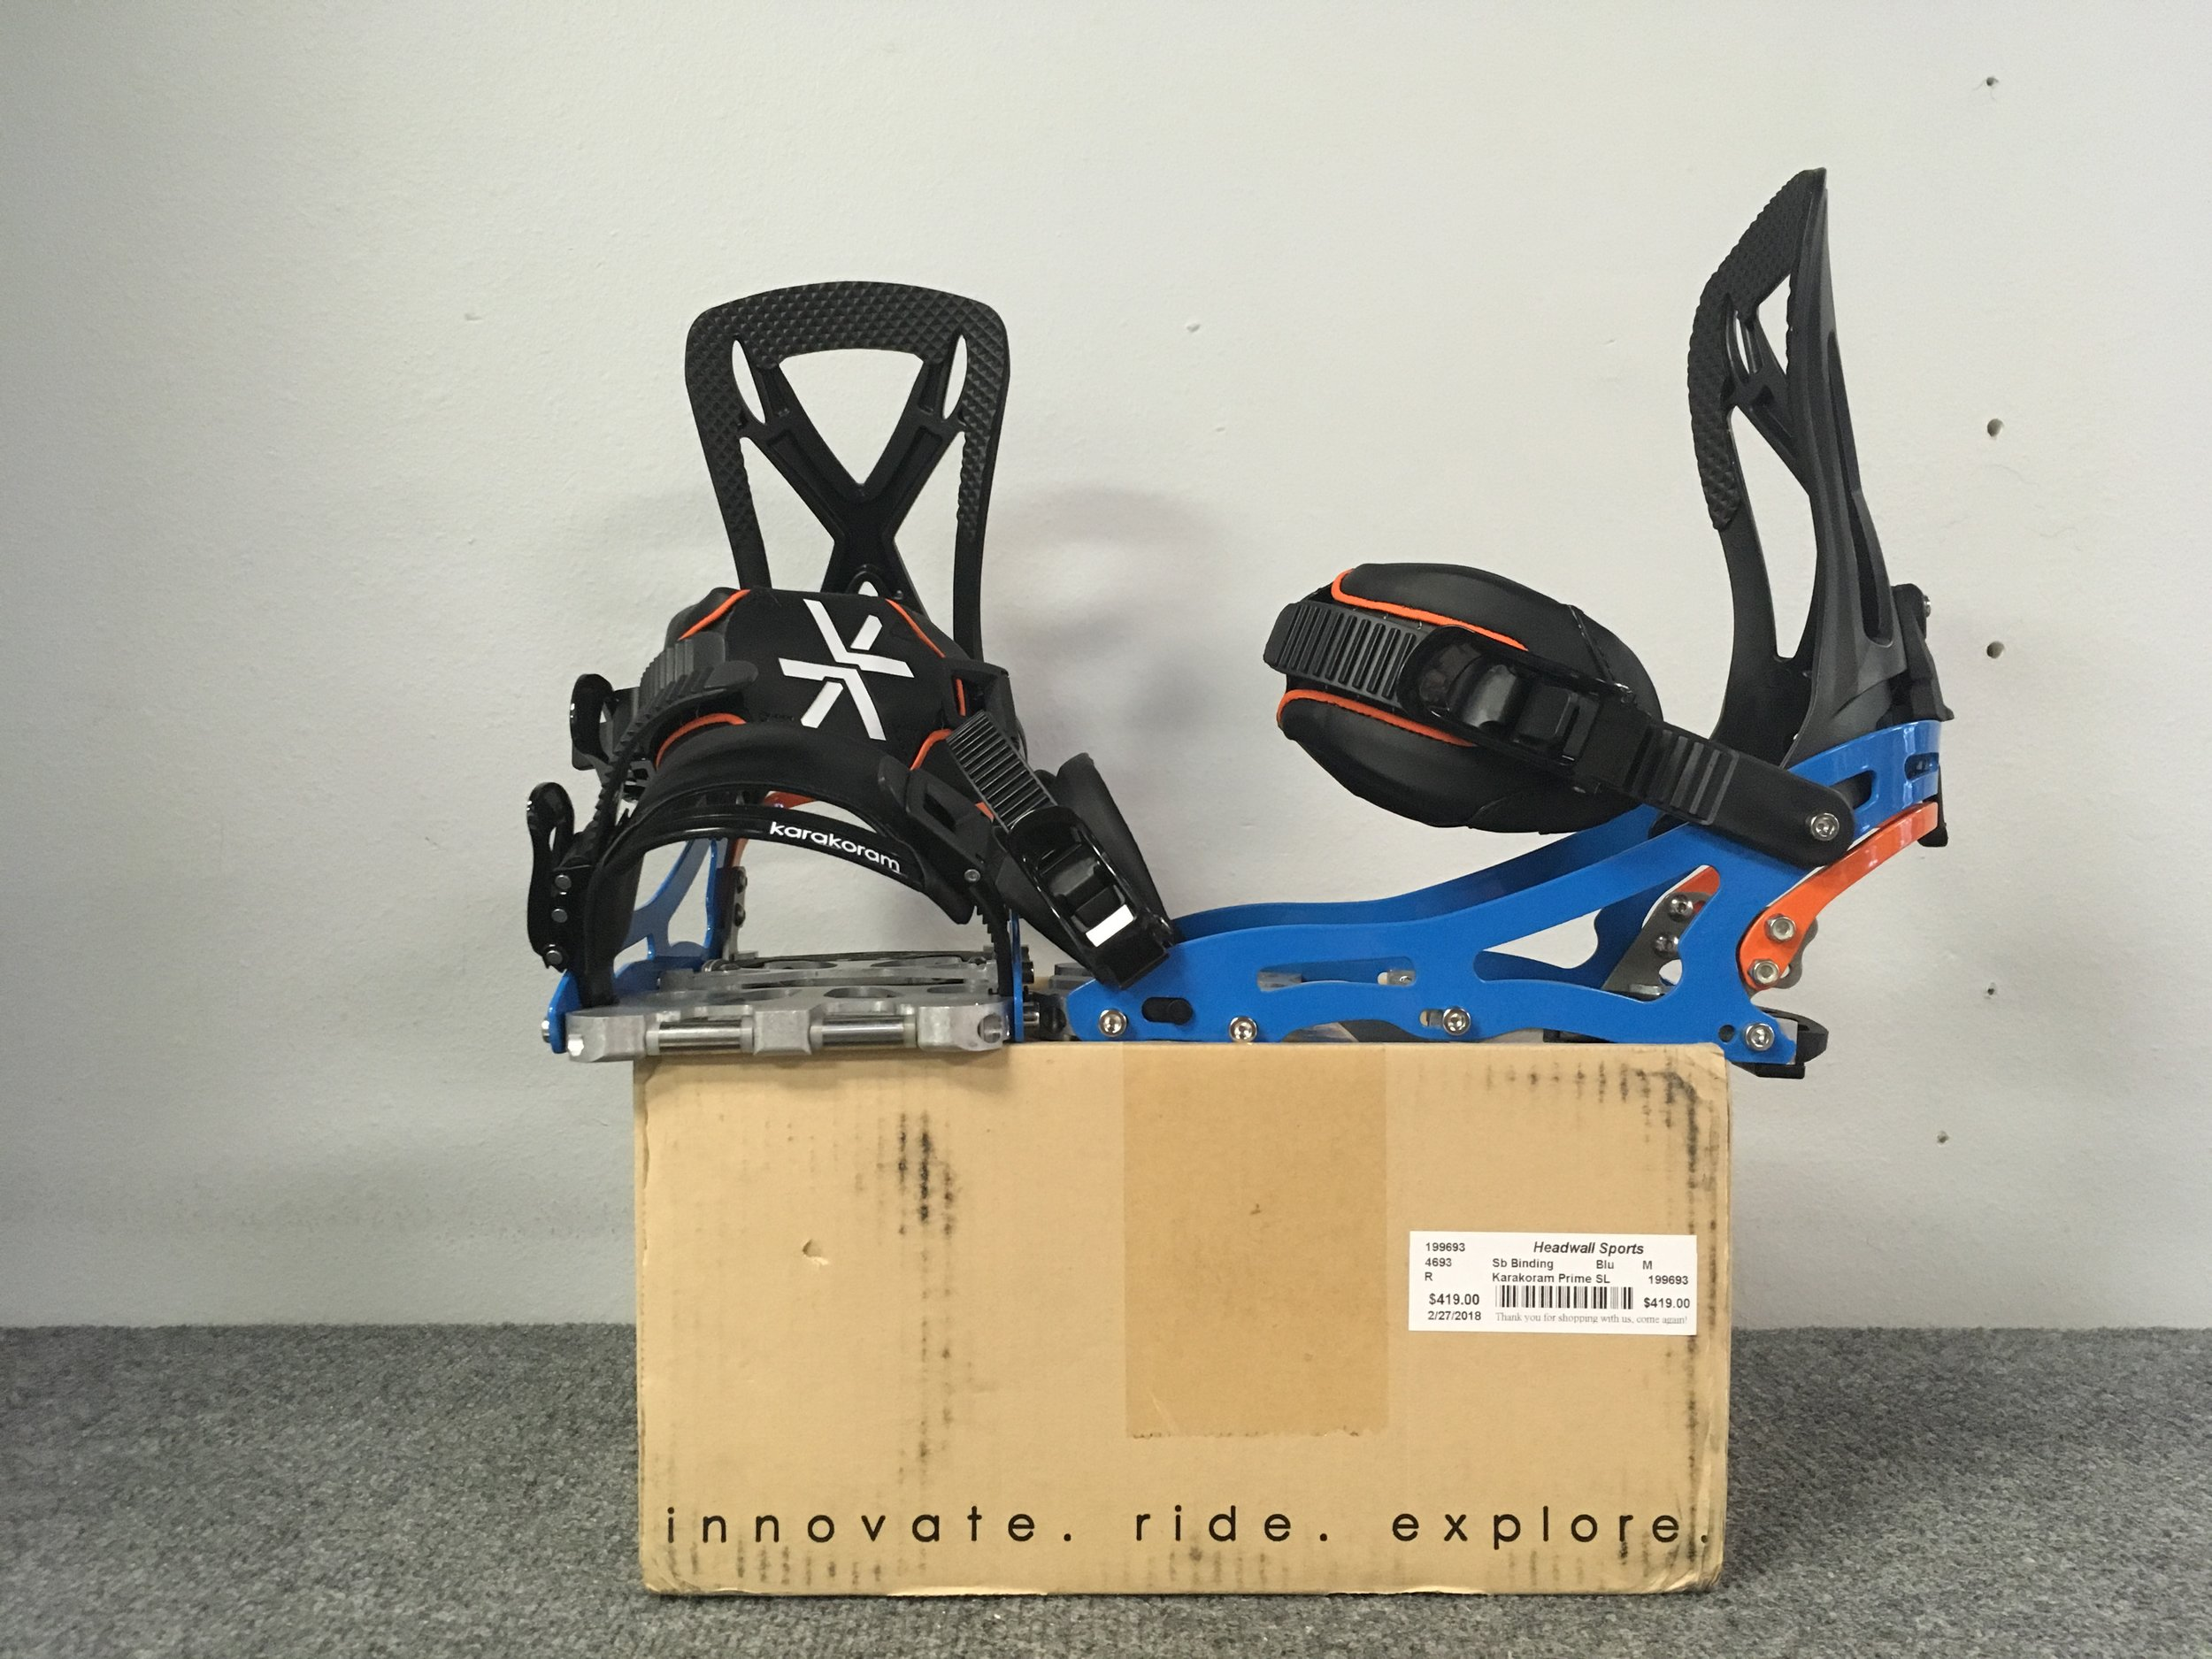 Karakoram's Prime SL are arguably some of the best splitboard bindings on the market. By combining lightweight construction and sold downhill performance the Prime SL has been the go-to for backcountry users. Suggested retail is listed at $750 but we can get you out there for $419! The size is a medium.